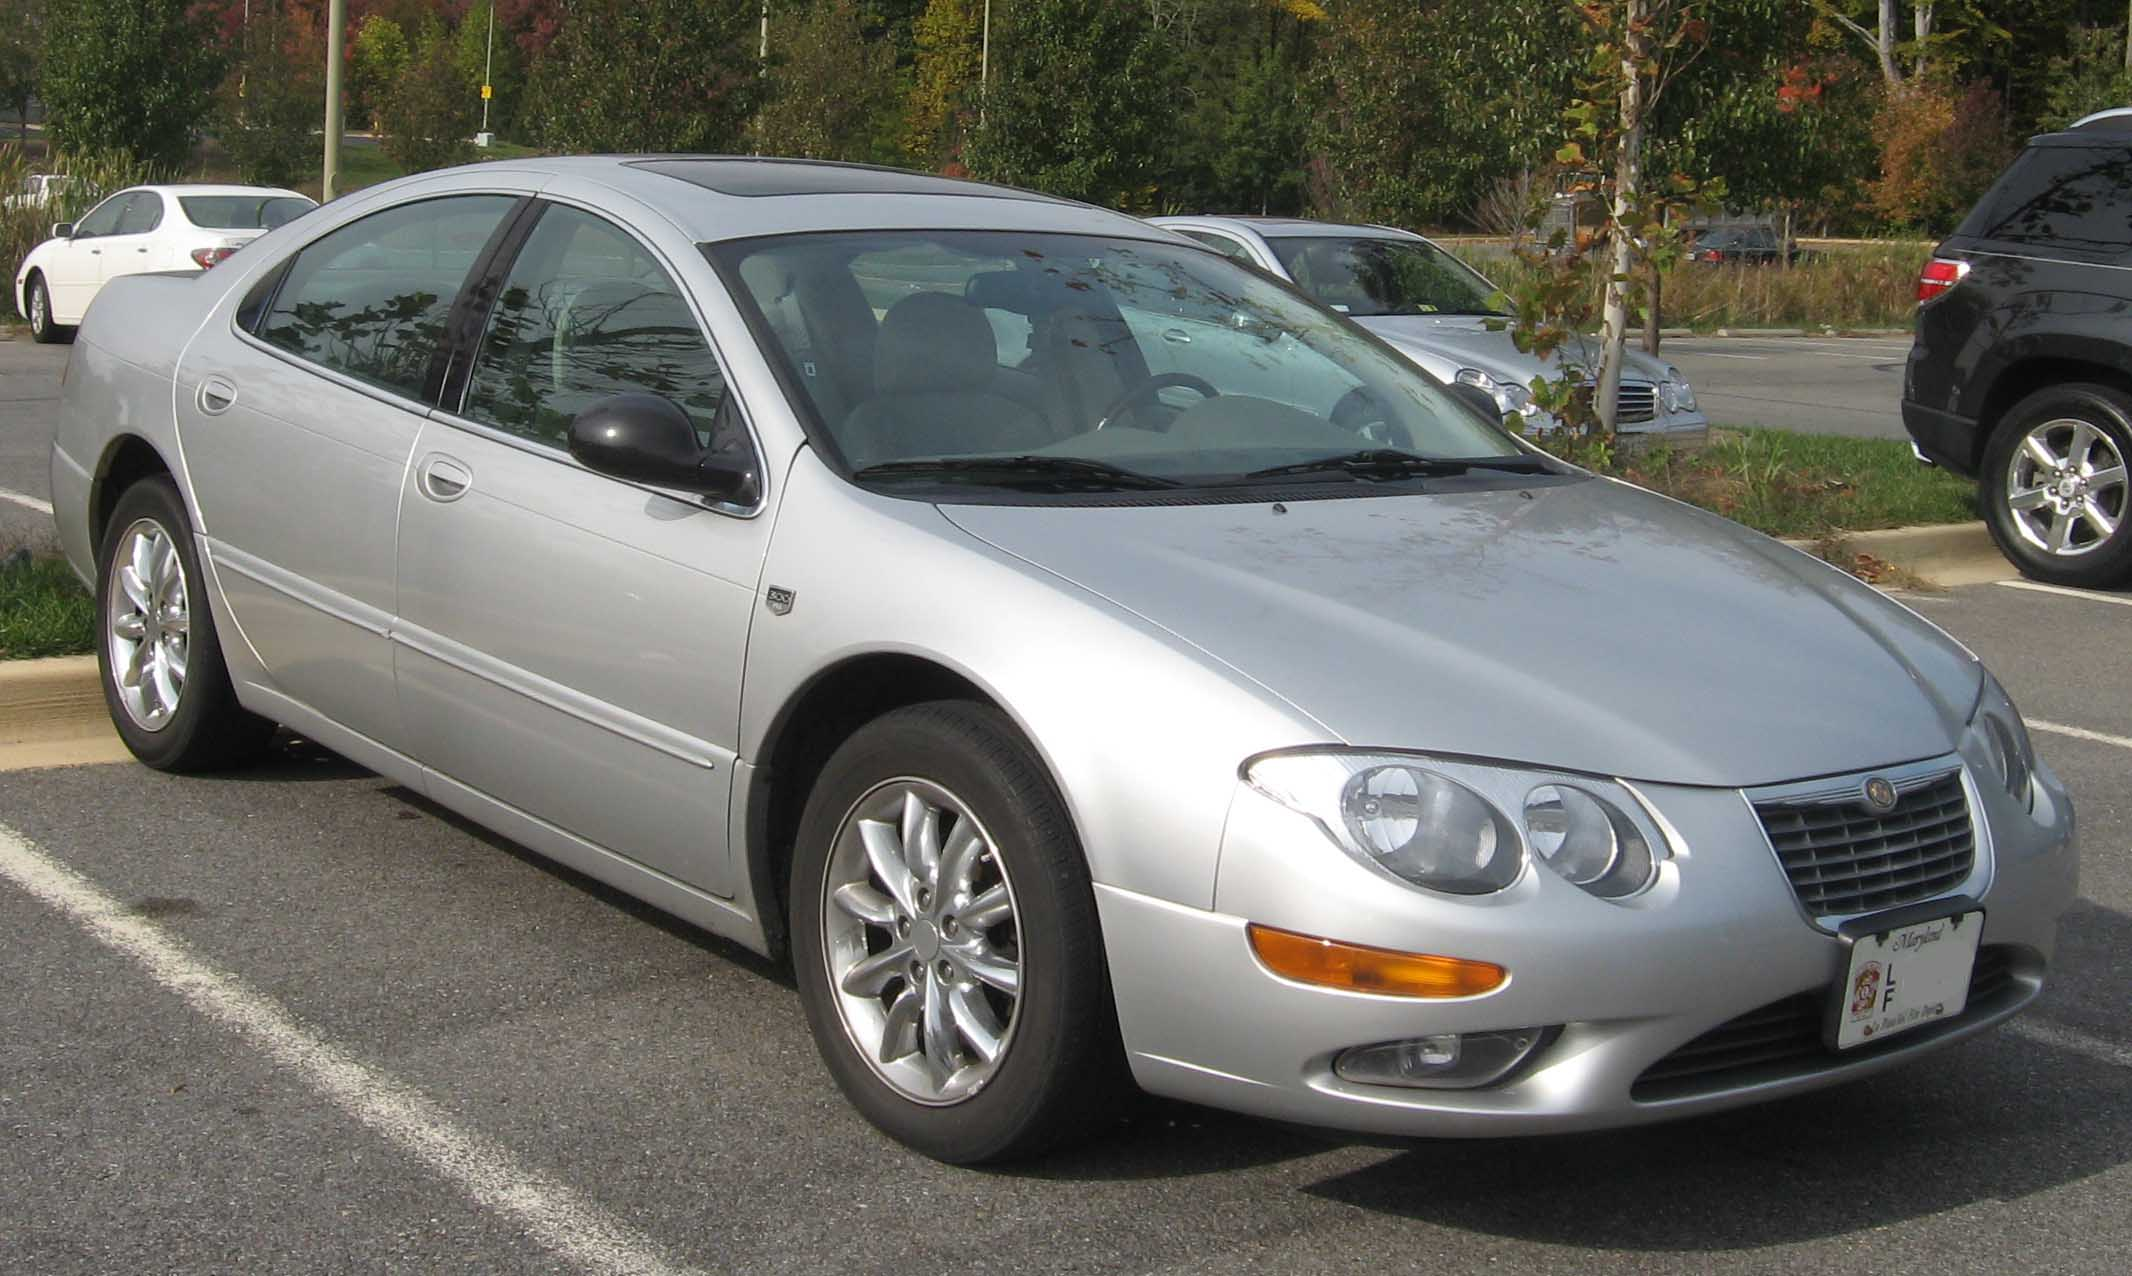 2002 Chrysler 300m #1